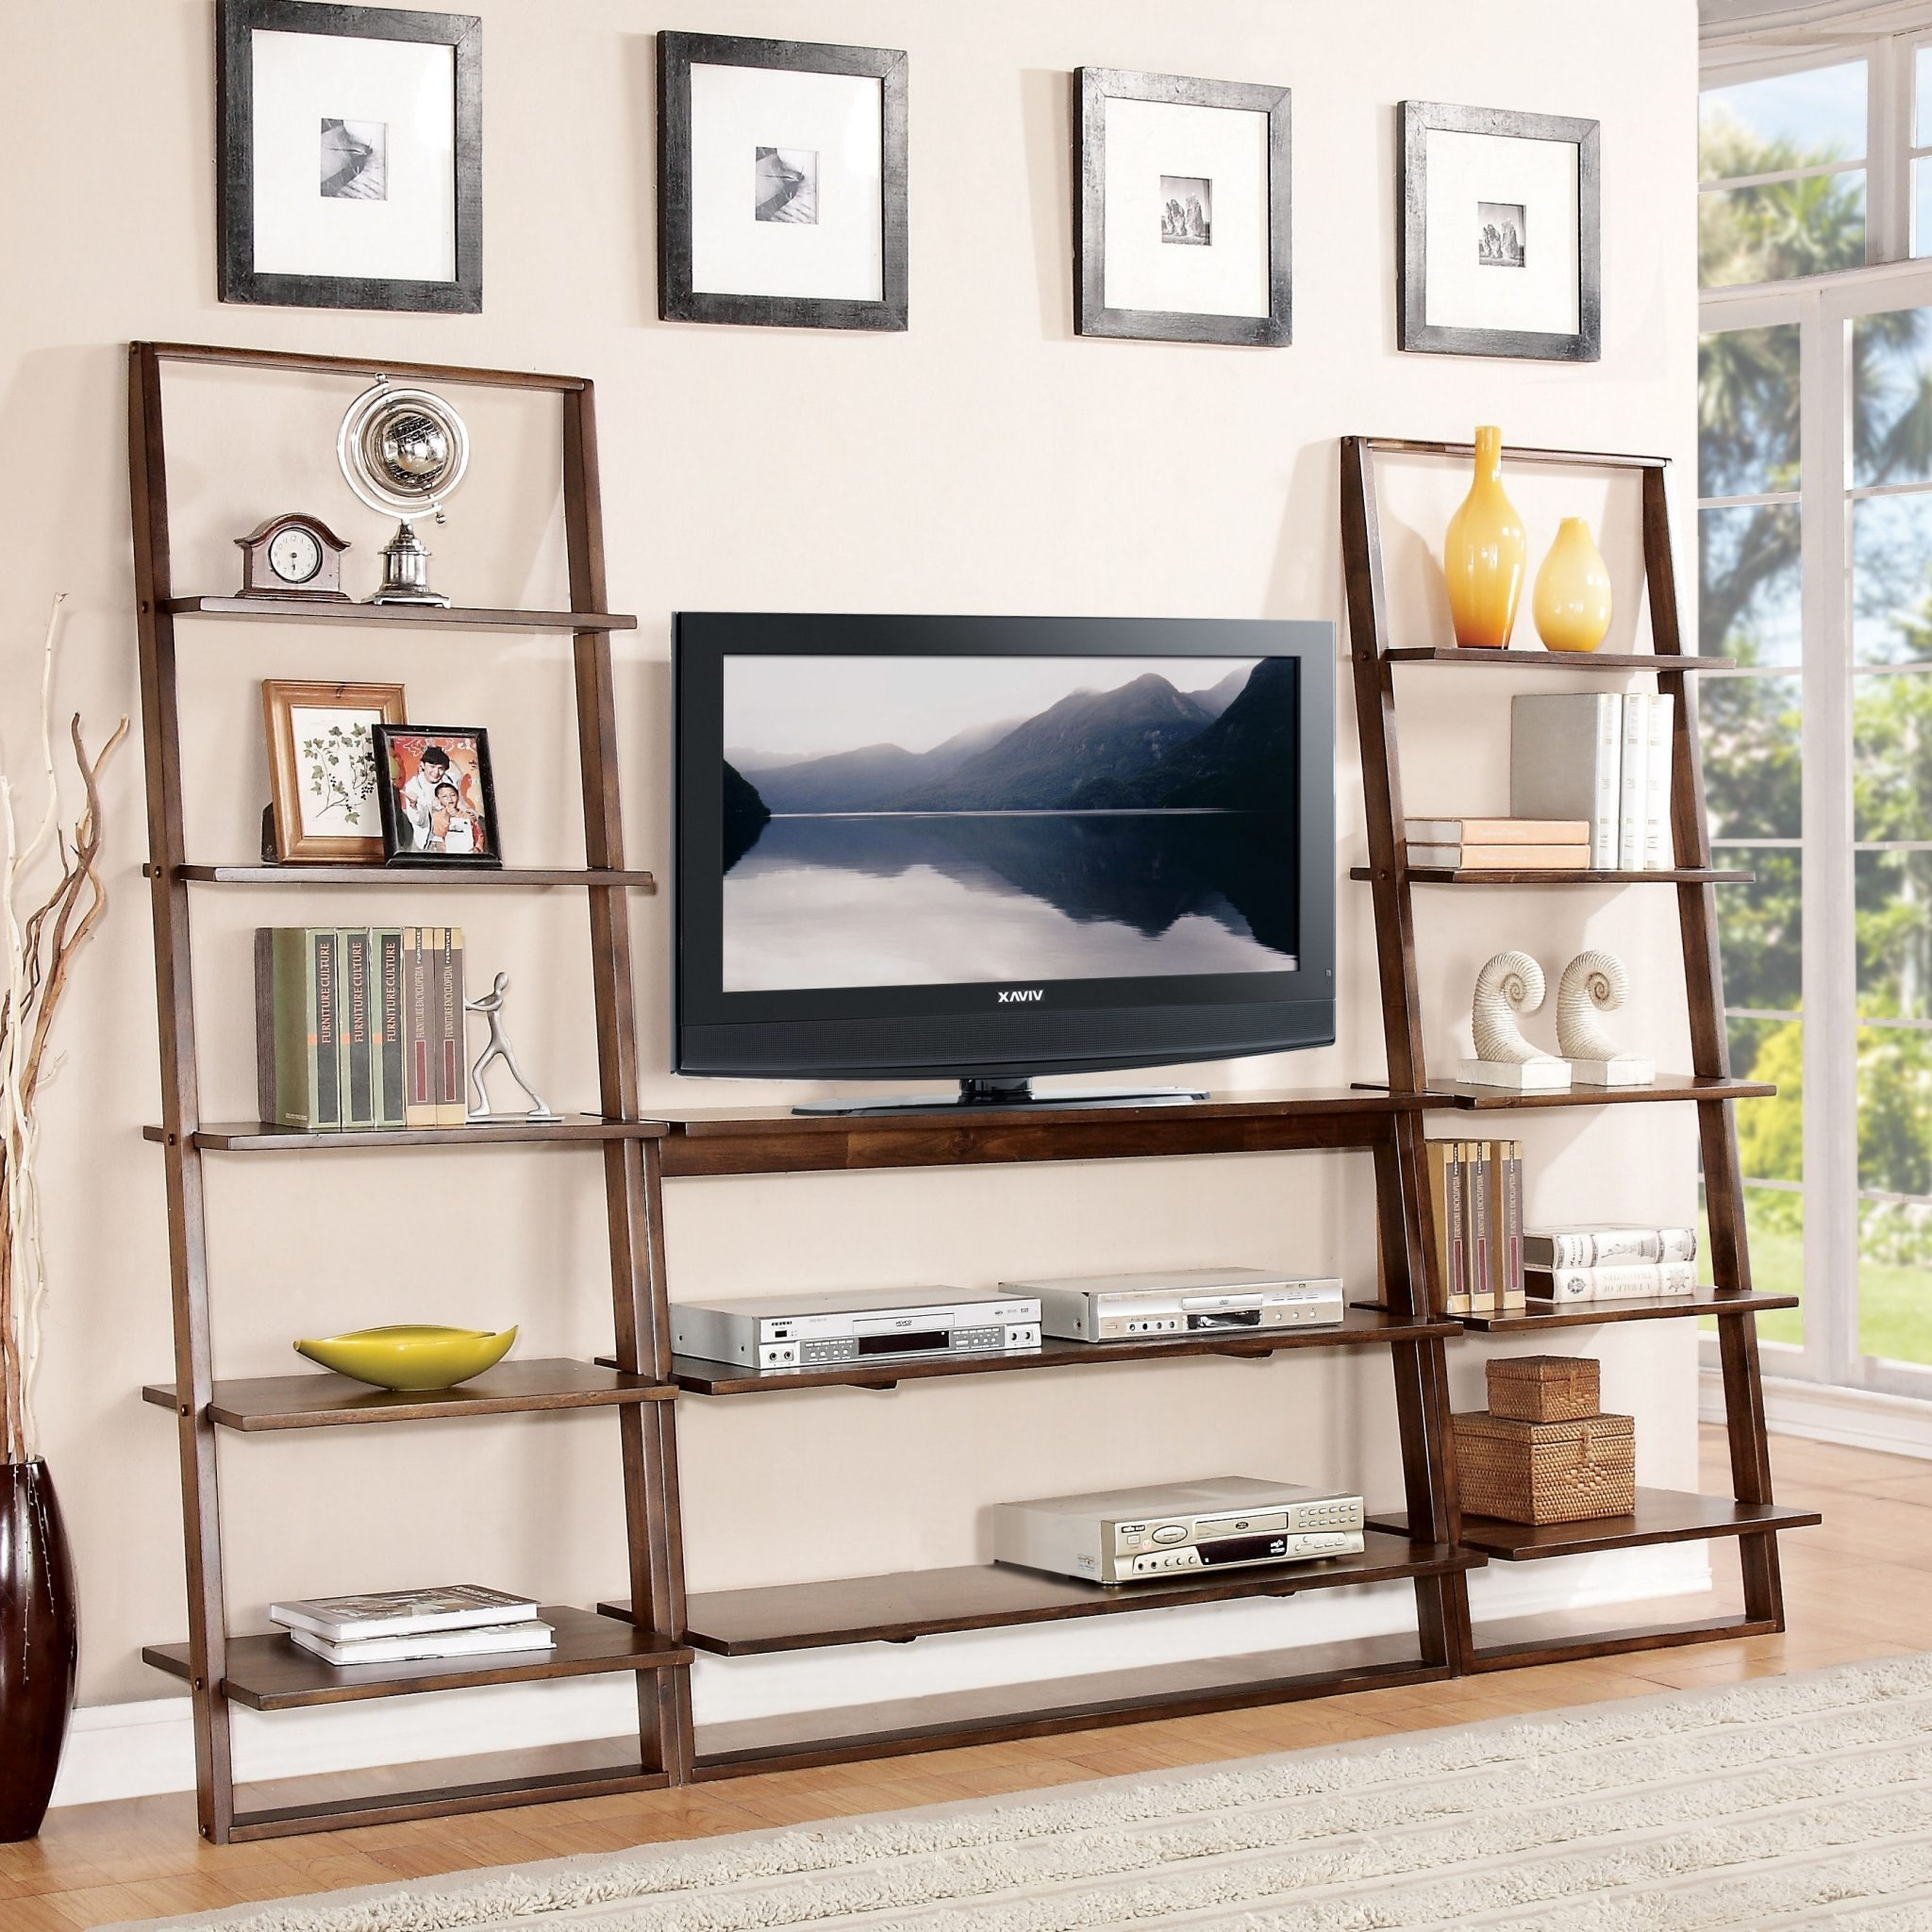 Tv Stands Inspire Black And White Tv Stand Bookshelf Design Ideas With Regard To Tv Unit And Bookcase (View 8 of 15)